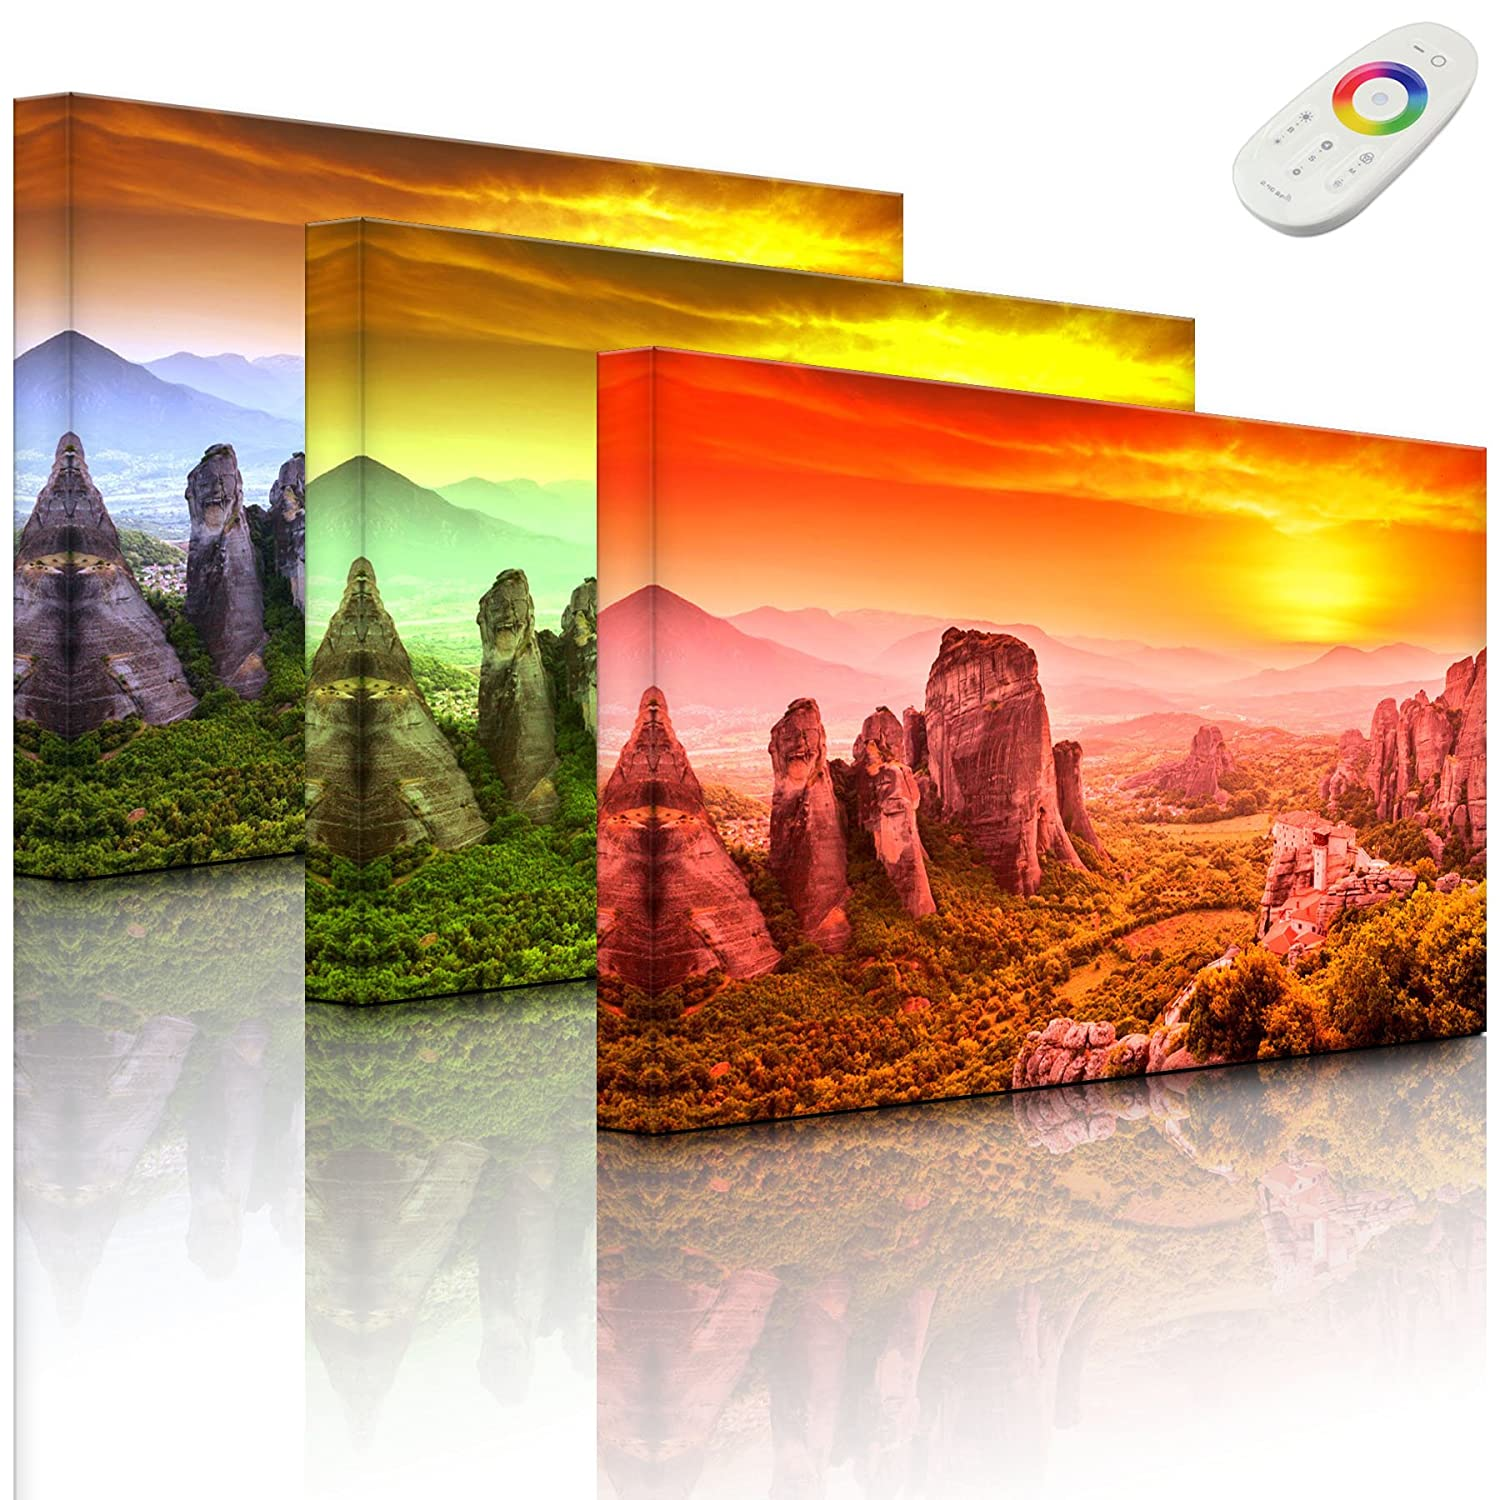 lightbox-multicolor.com Wall picture with LED - houses in the rocks - 60 x 40 cm - front lighted Rossteutscher GbR